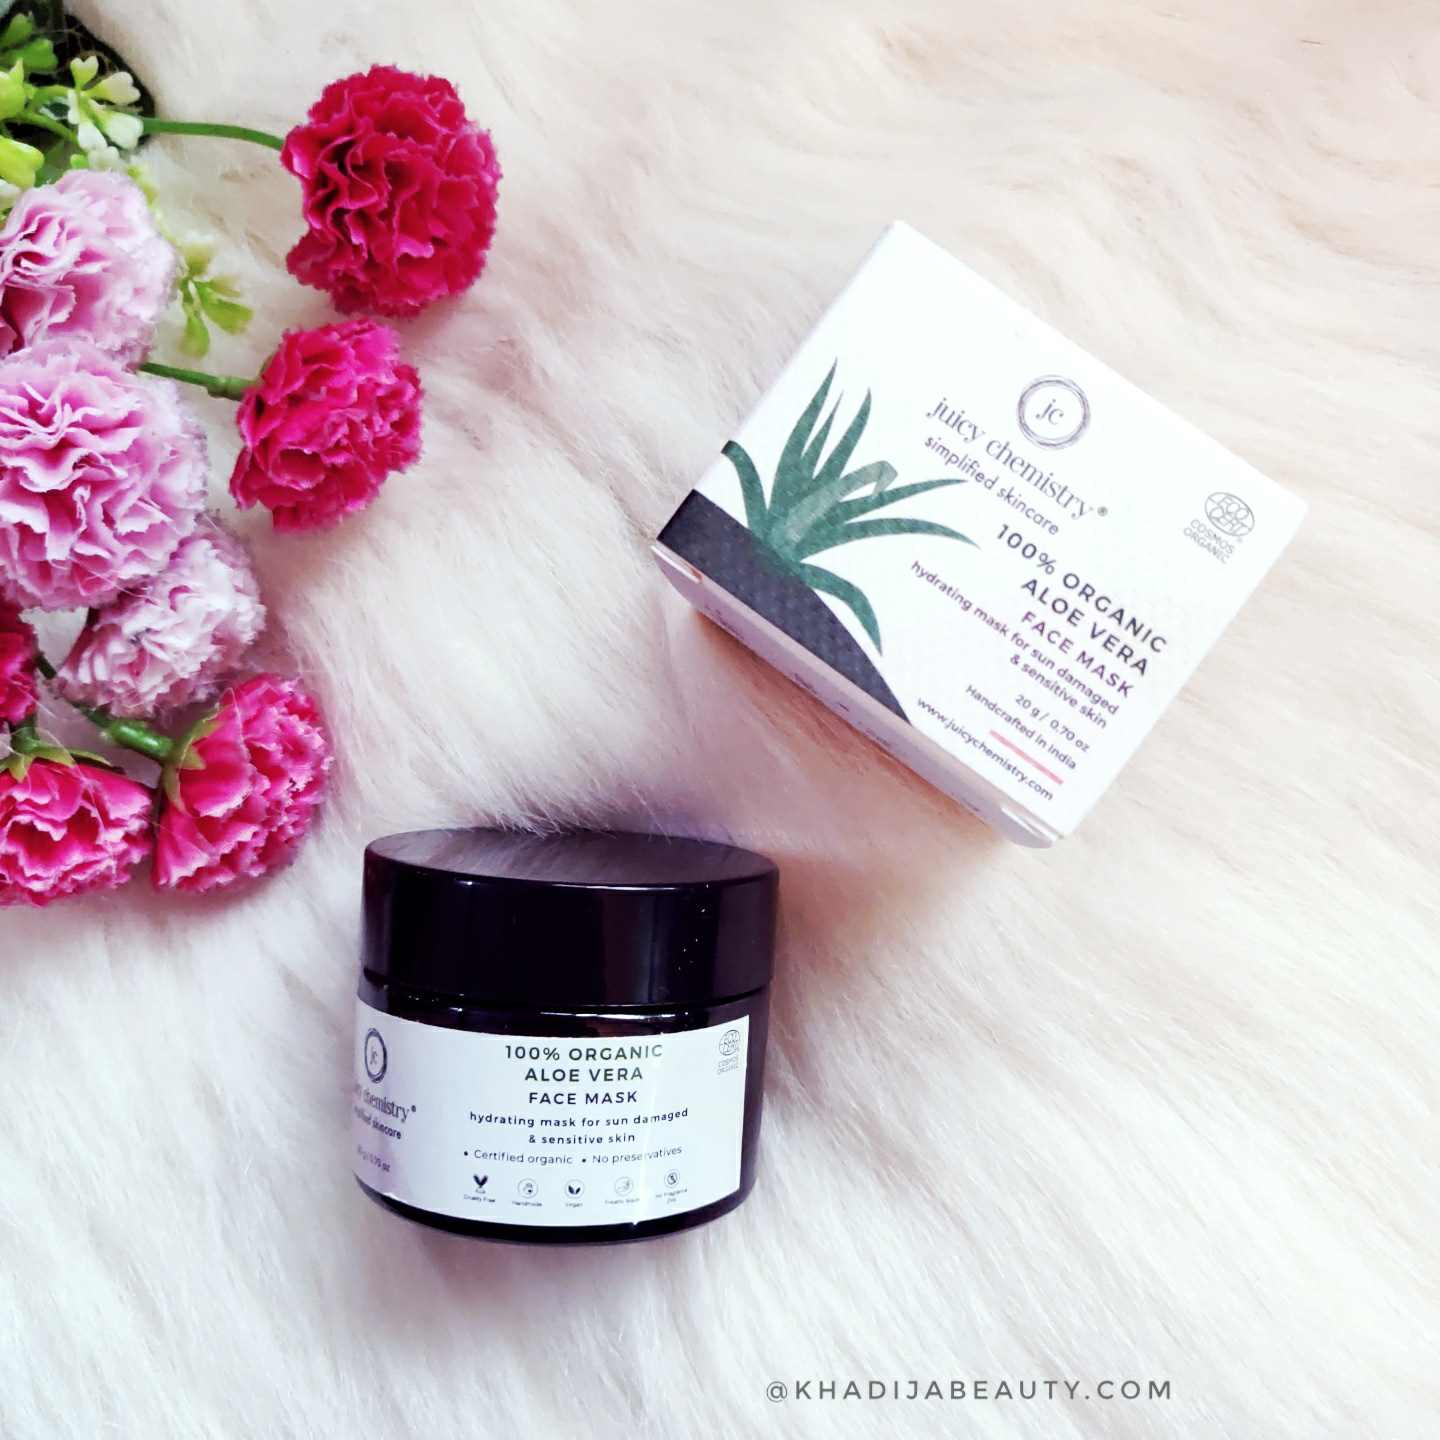 Juicy chemistry Aloe Vera Powder Mask review